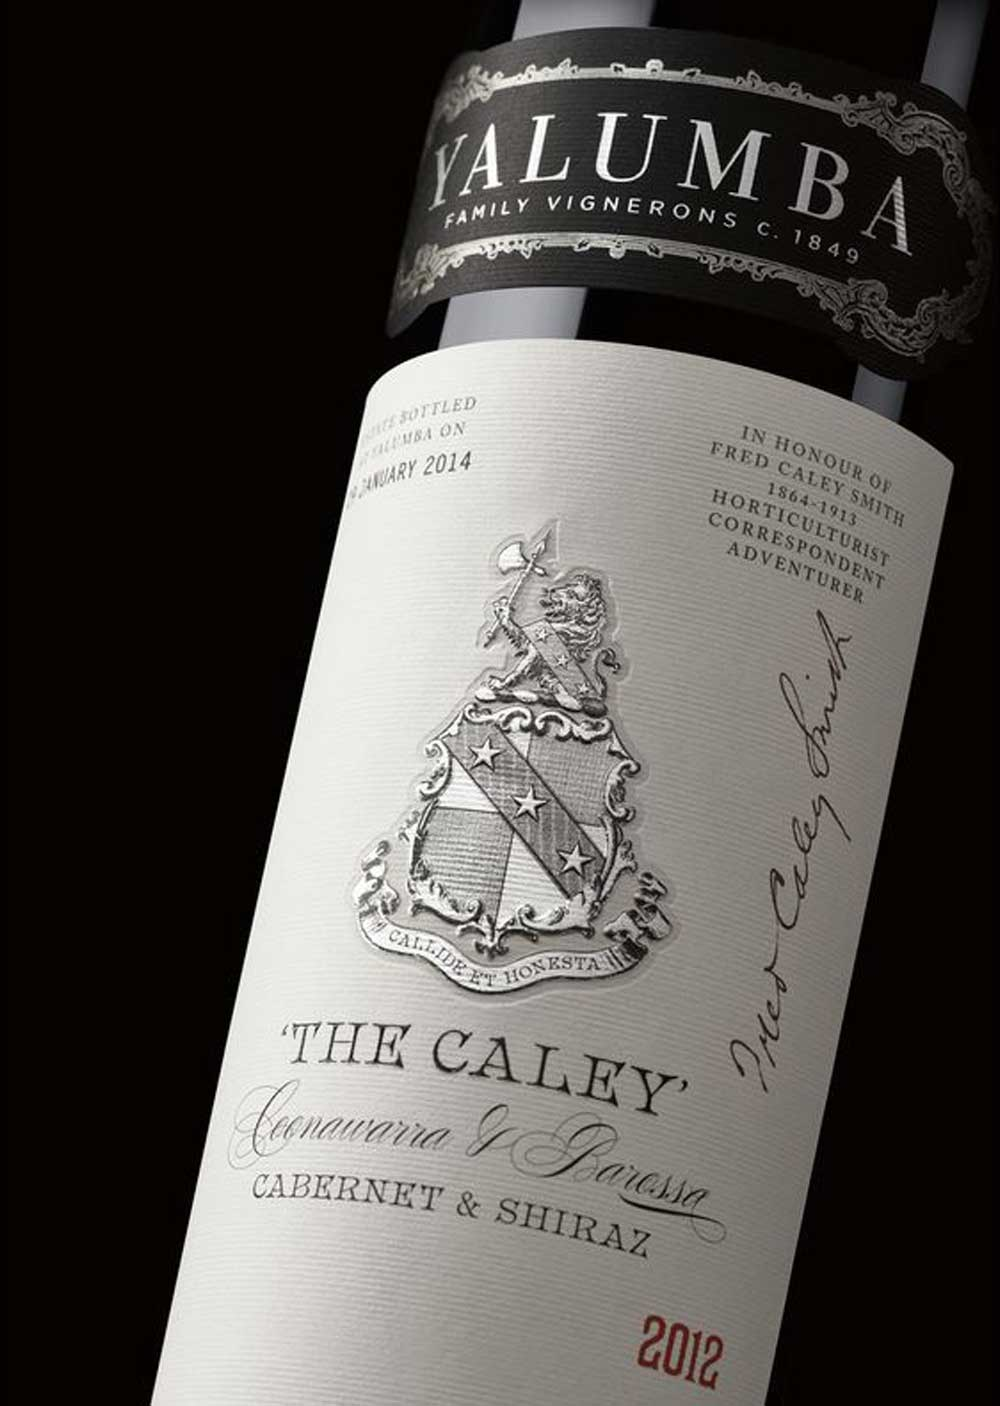 It's just an image of Inventive Wine Label Design Inspiration